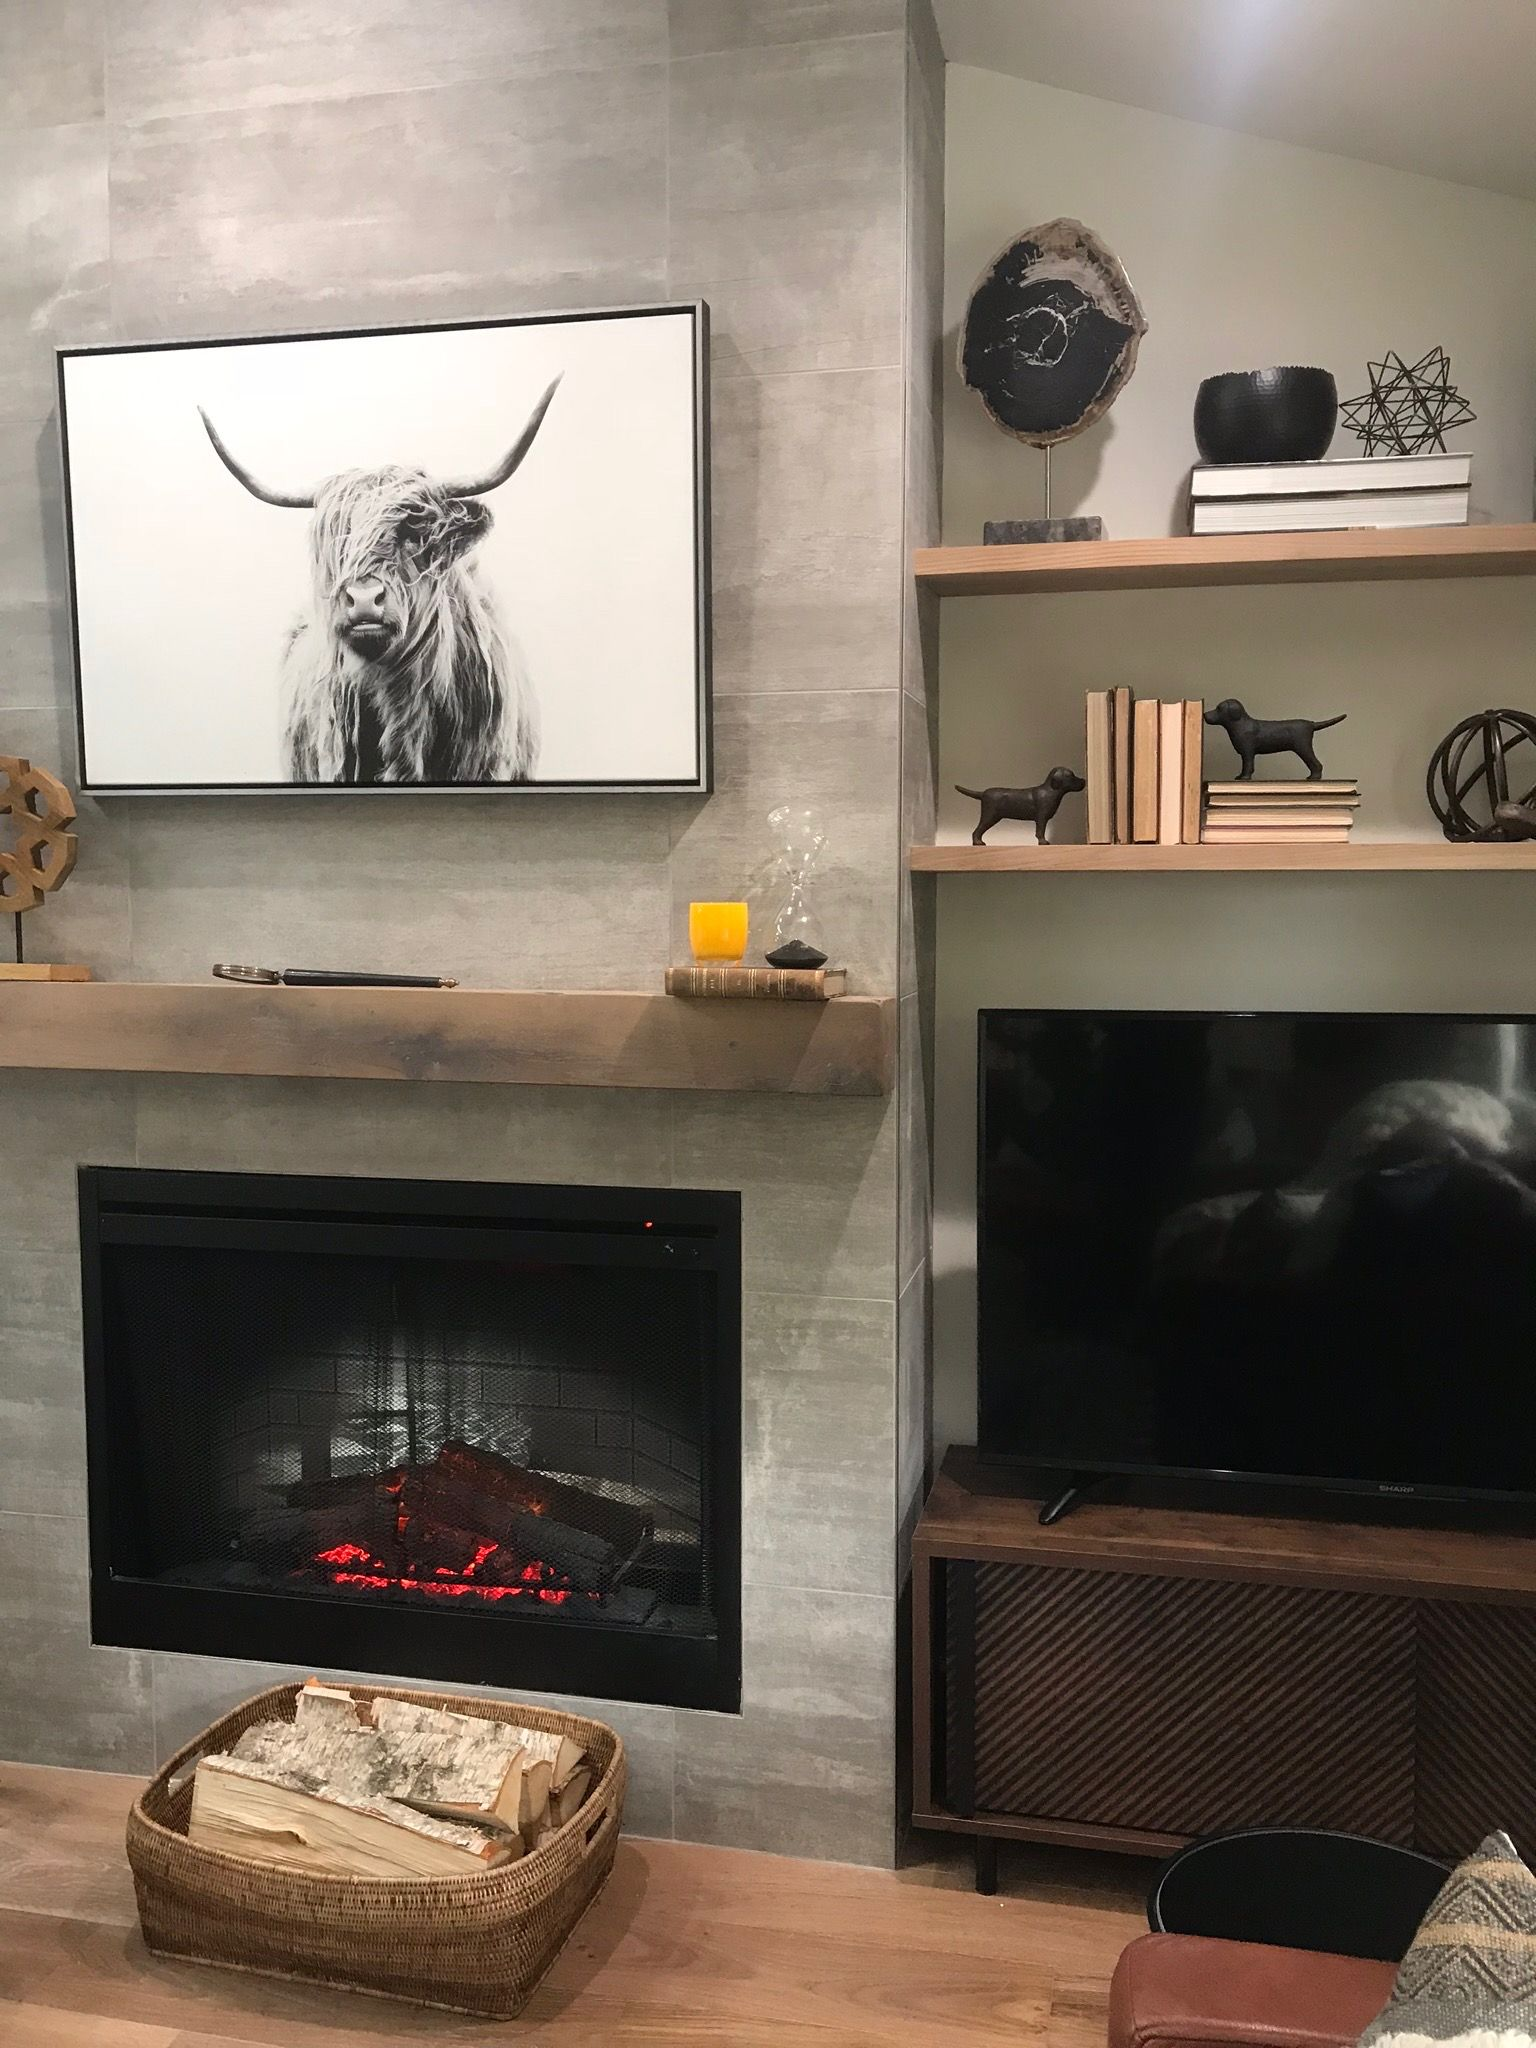 Brother Vs Season 6 Episode 1 The Journey Begins In Wiring Tv Above Gas Fireplace We Put Behind Art Case Homeowner Really Wants But When I Design That Isnt My Preference